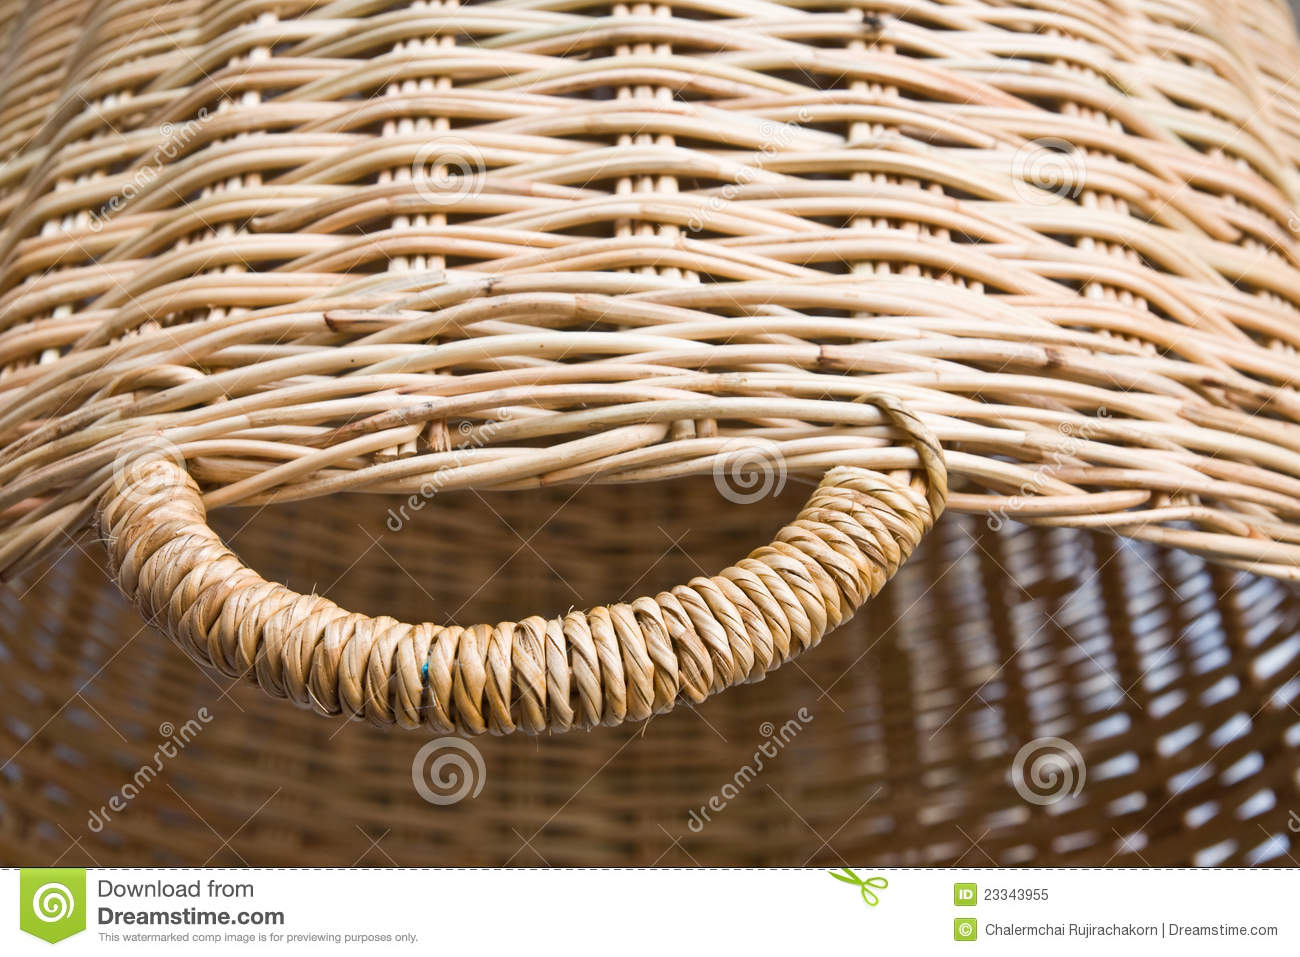 Handicraft Basketry : Rattan basketry royalty free stock photo image